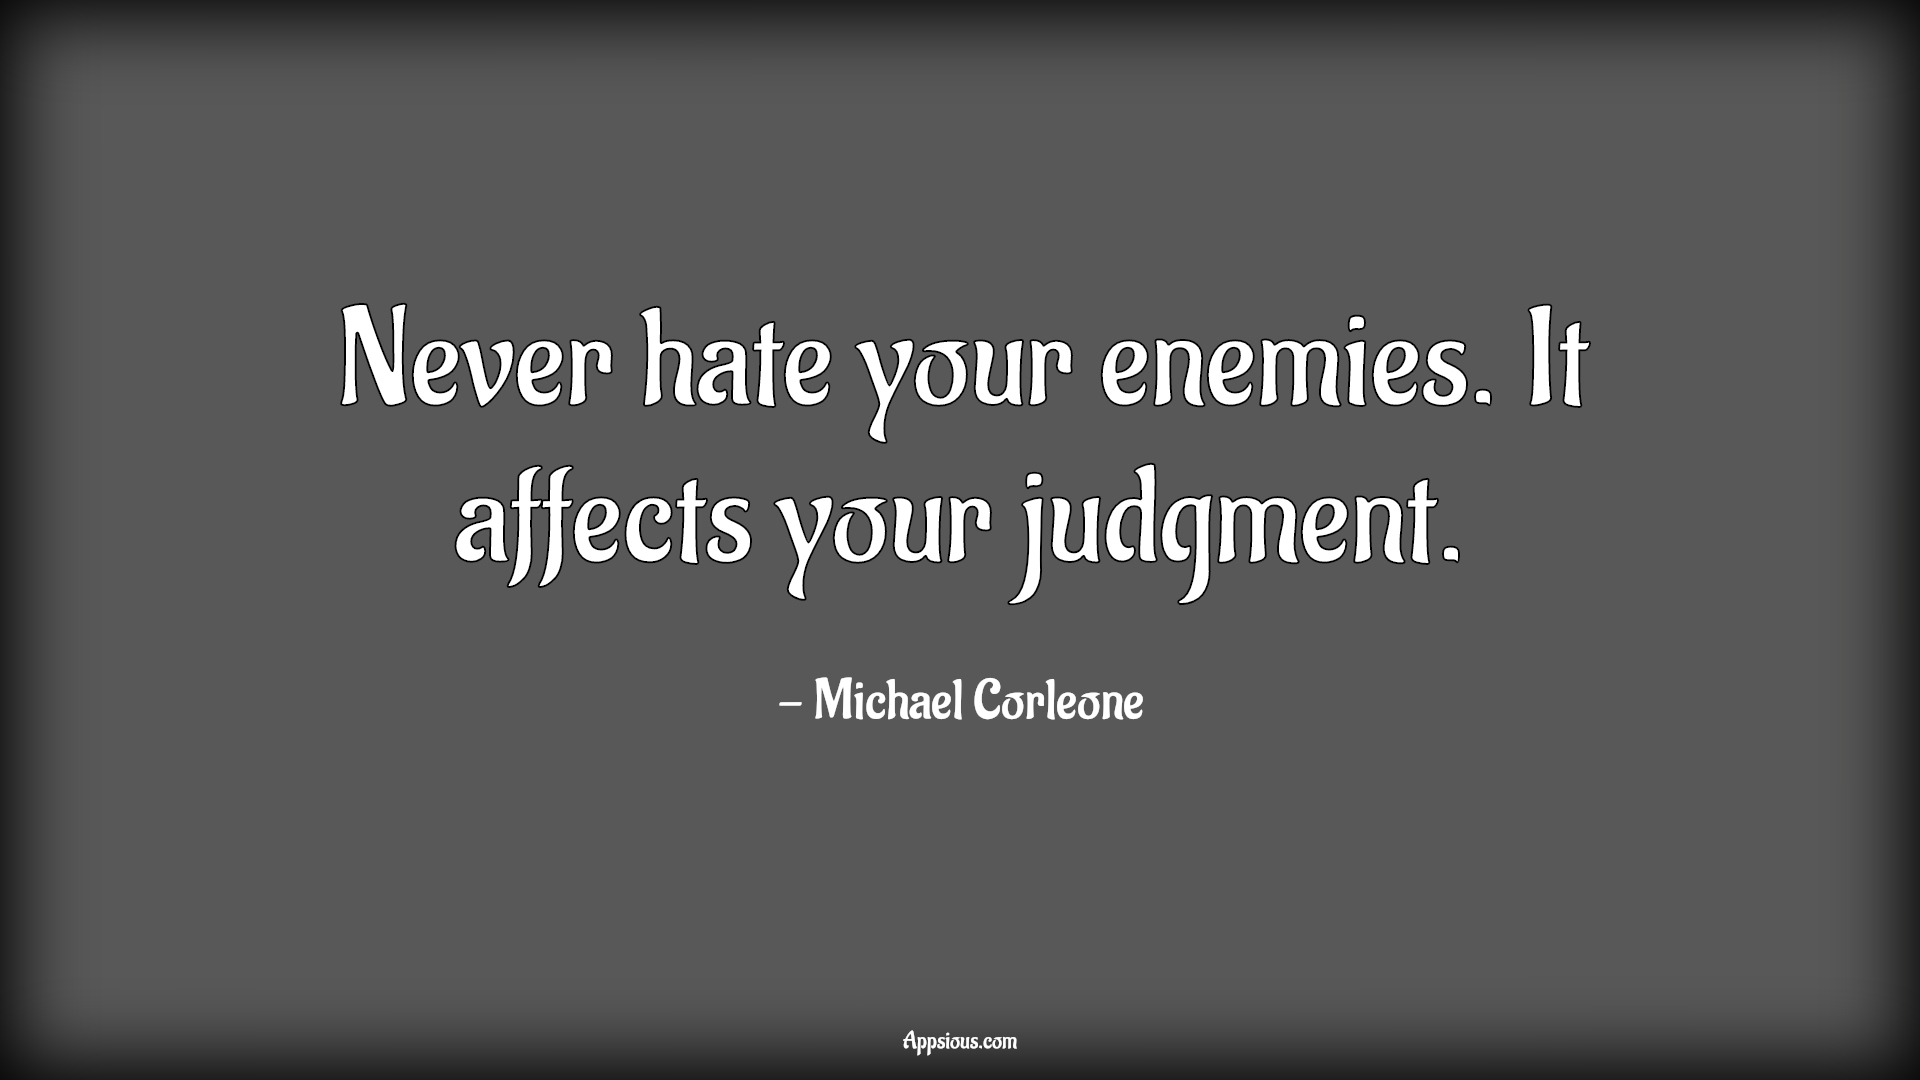 Never hate your enemies. It affects your judgment.